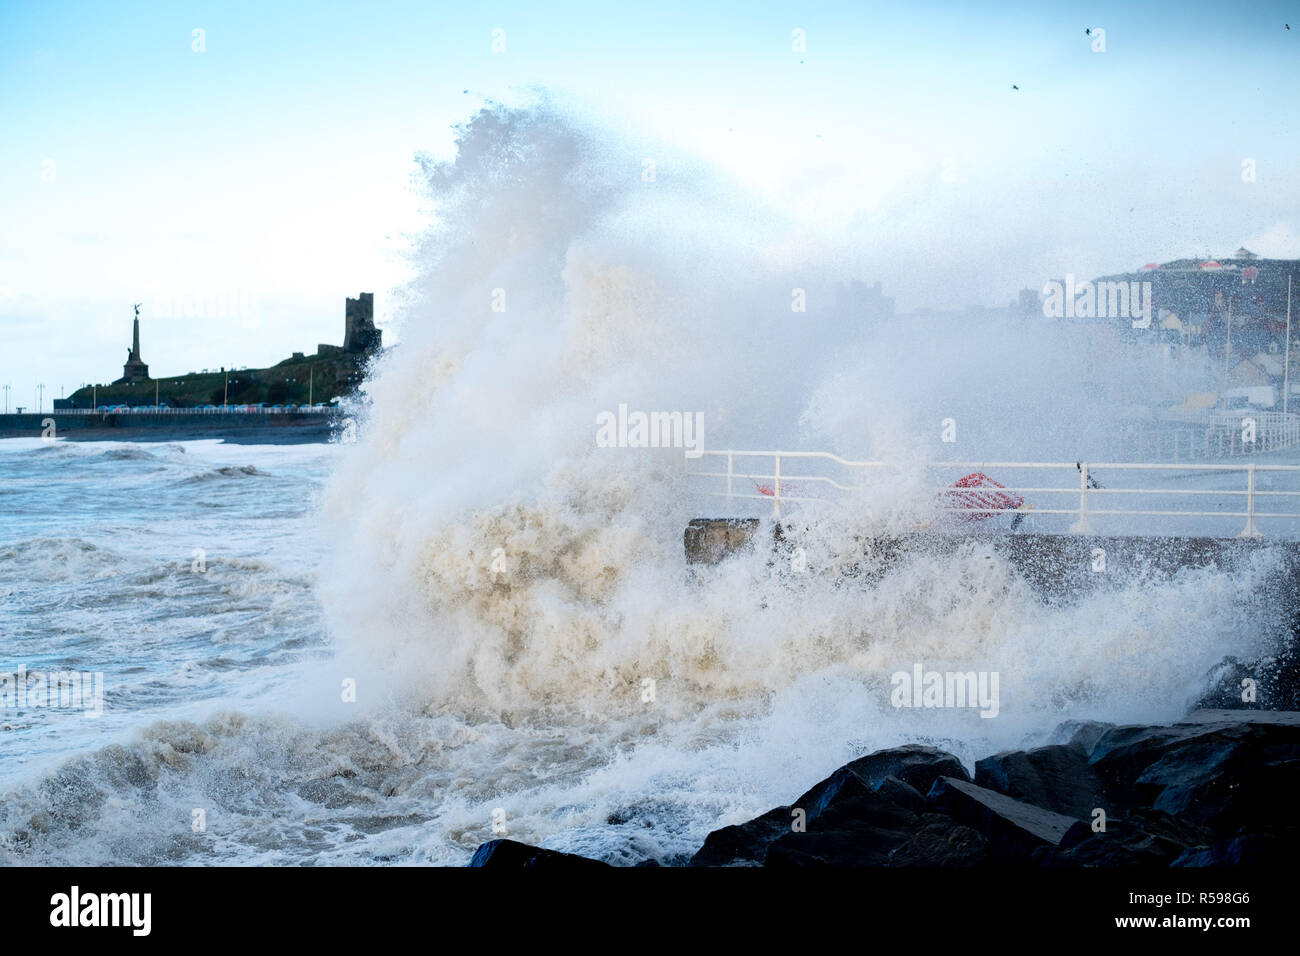 Aberystwyth Wales, UK. 30th Nov, 2018. UK Weather : In the aftermath of Storm Diana, strong gale force winds continue hammer huge waves against the sea defences in Aberystwyth on the Cardigan Bay coast of west Wales. photo Credit: keith morris/Alamy Live News Stock Photo